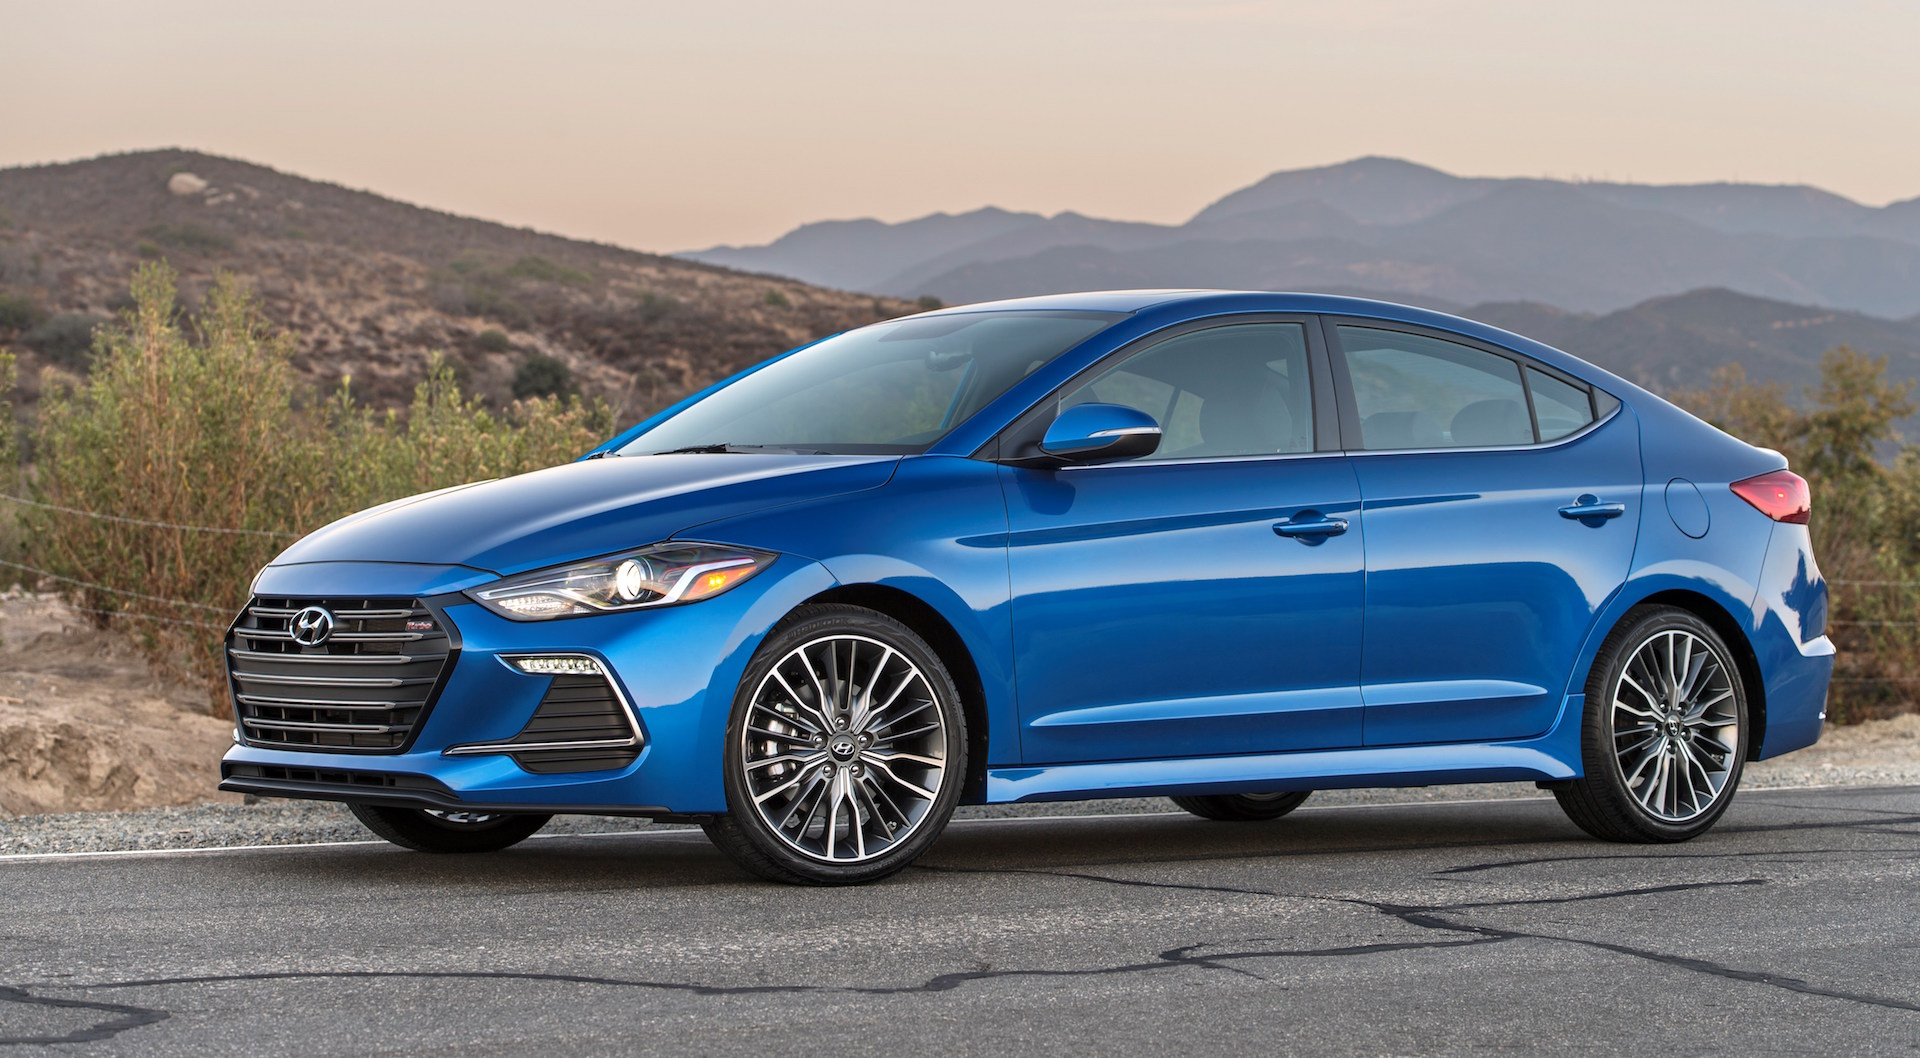 THE 2017 ELANTRA SPORT: NOT YOUR FATHER'S HYUNDAI…